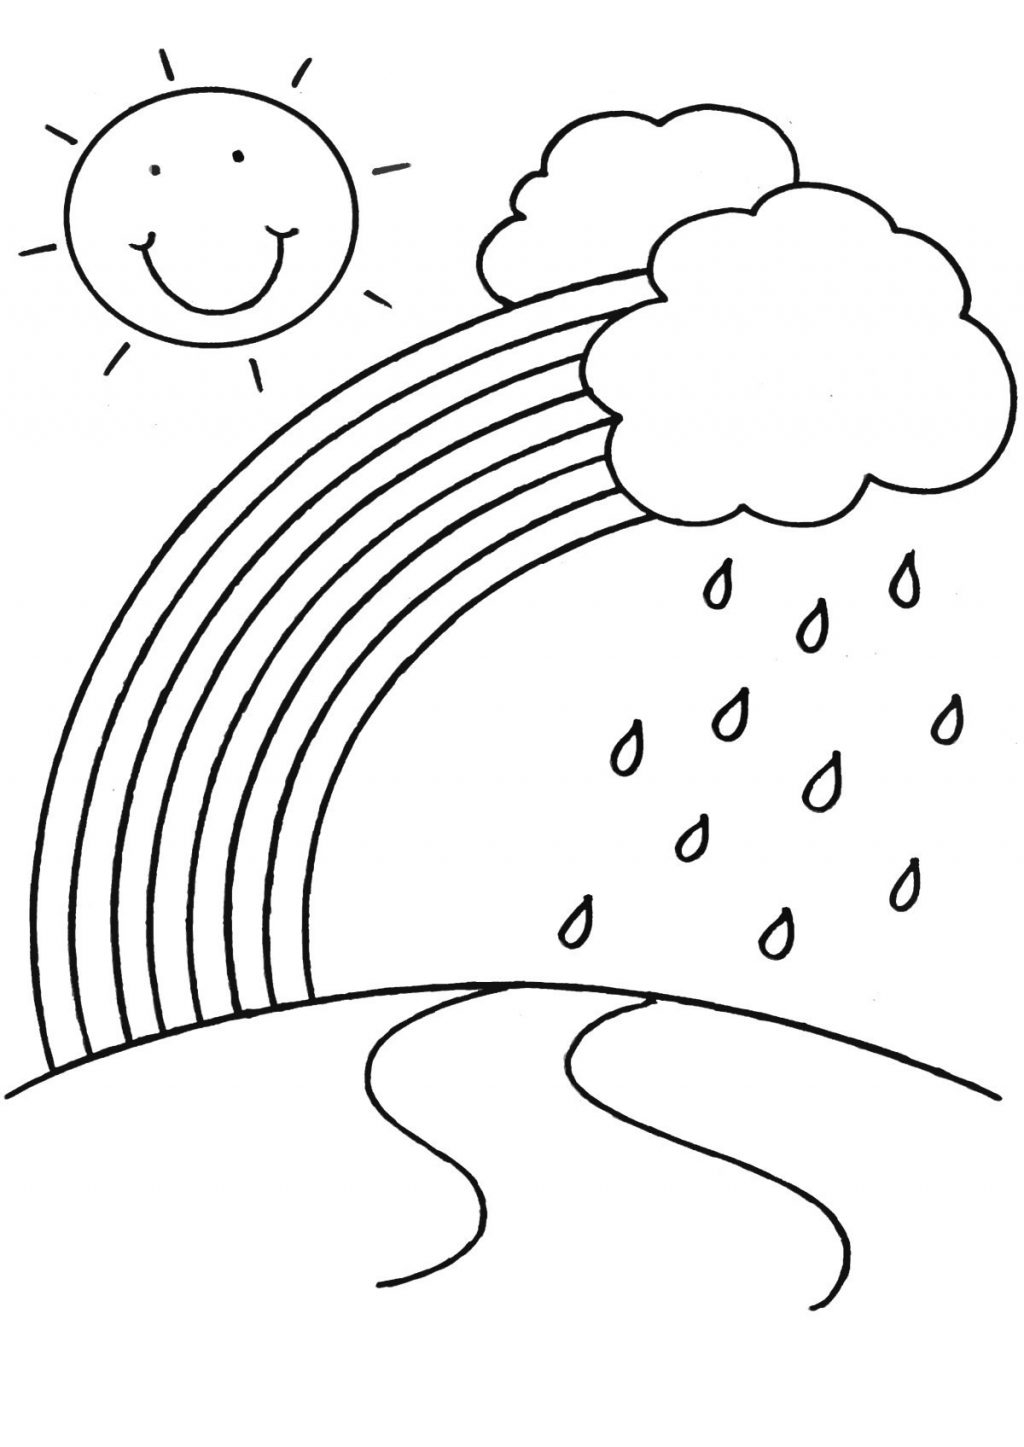 Pdf Coloring Pages For Kids Coloring Page Incredible Rainbow Coloring Book Page Picturesr